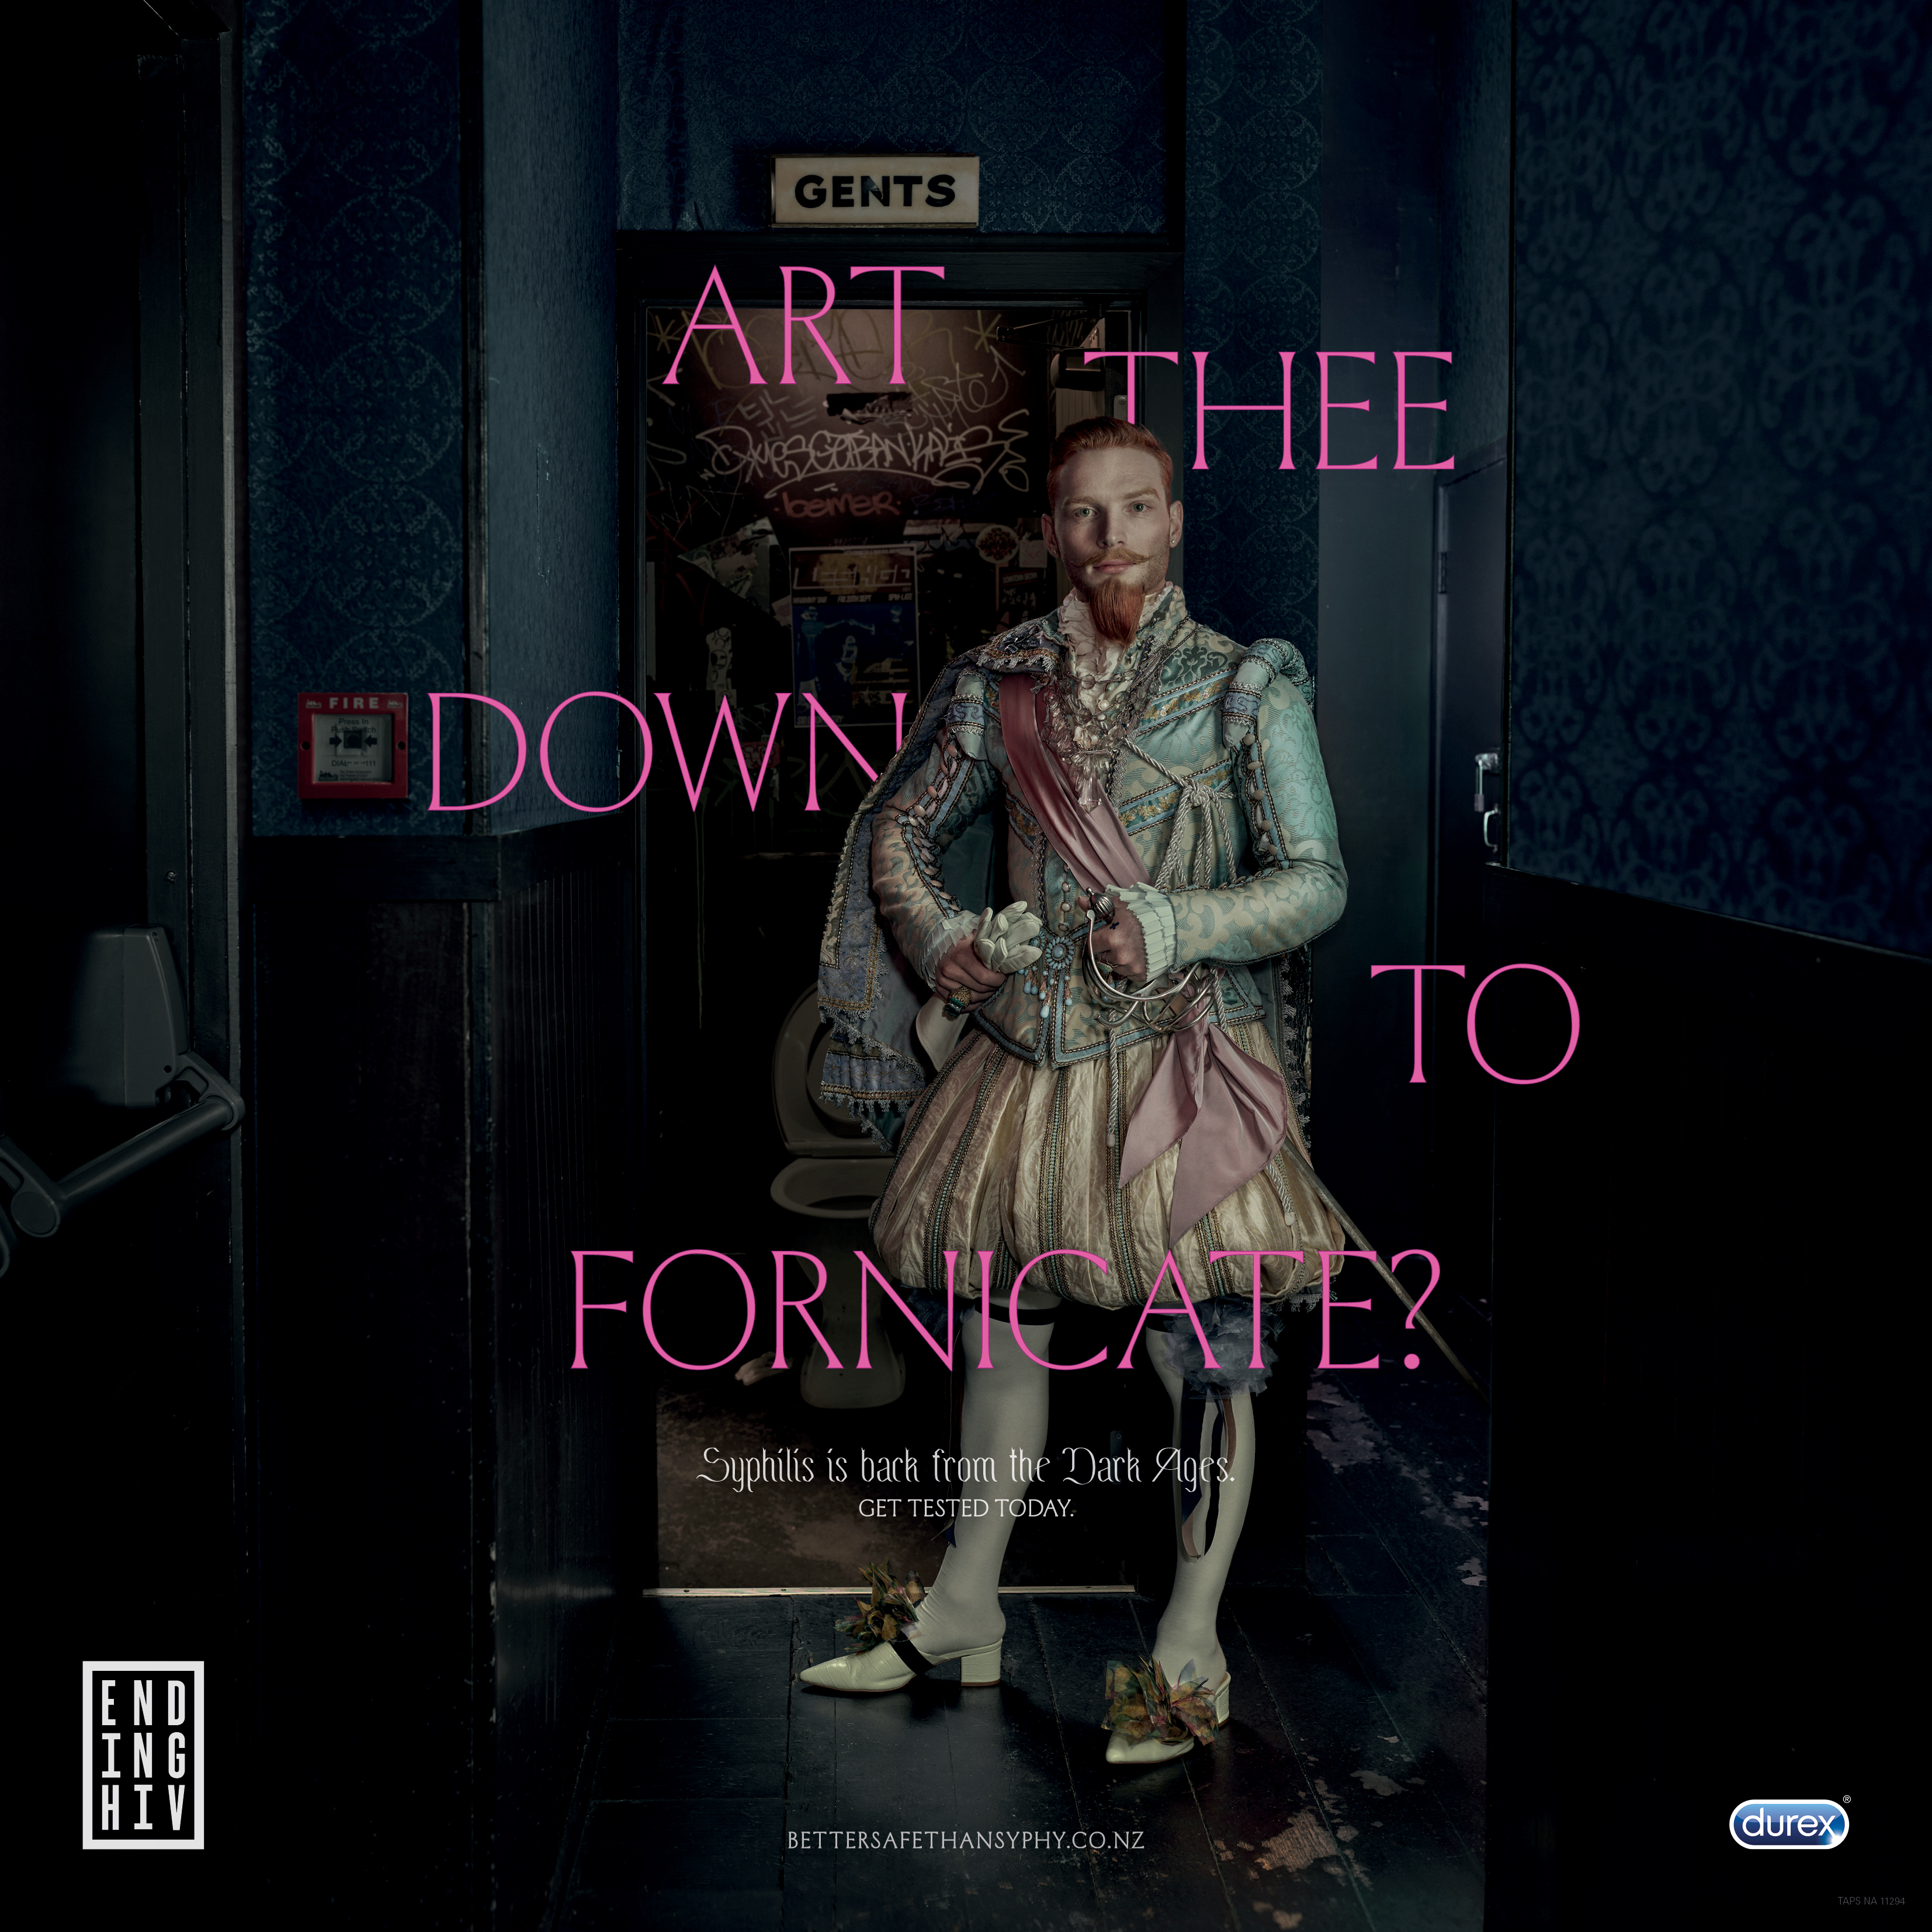 """NZ Aids Foundation and Durex ask """"Art thee down to fornicate?"""" in latest campaign via FCB NZ"""